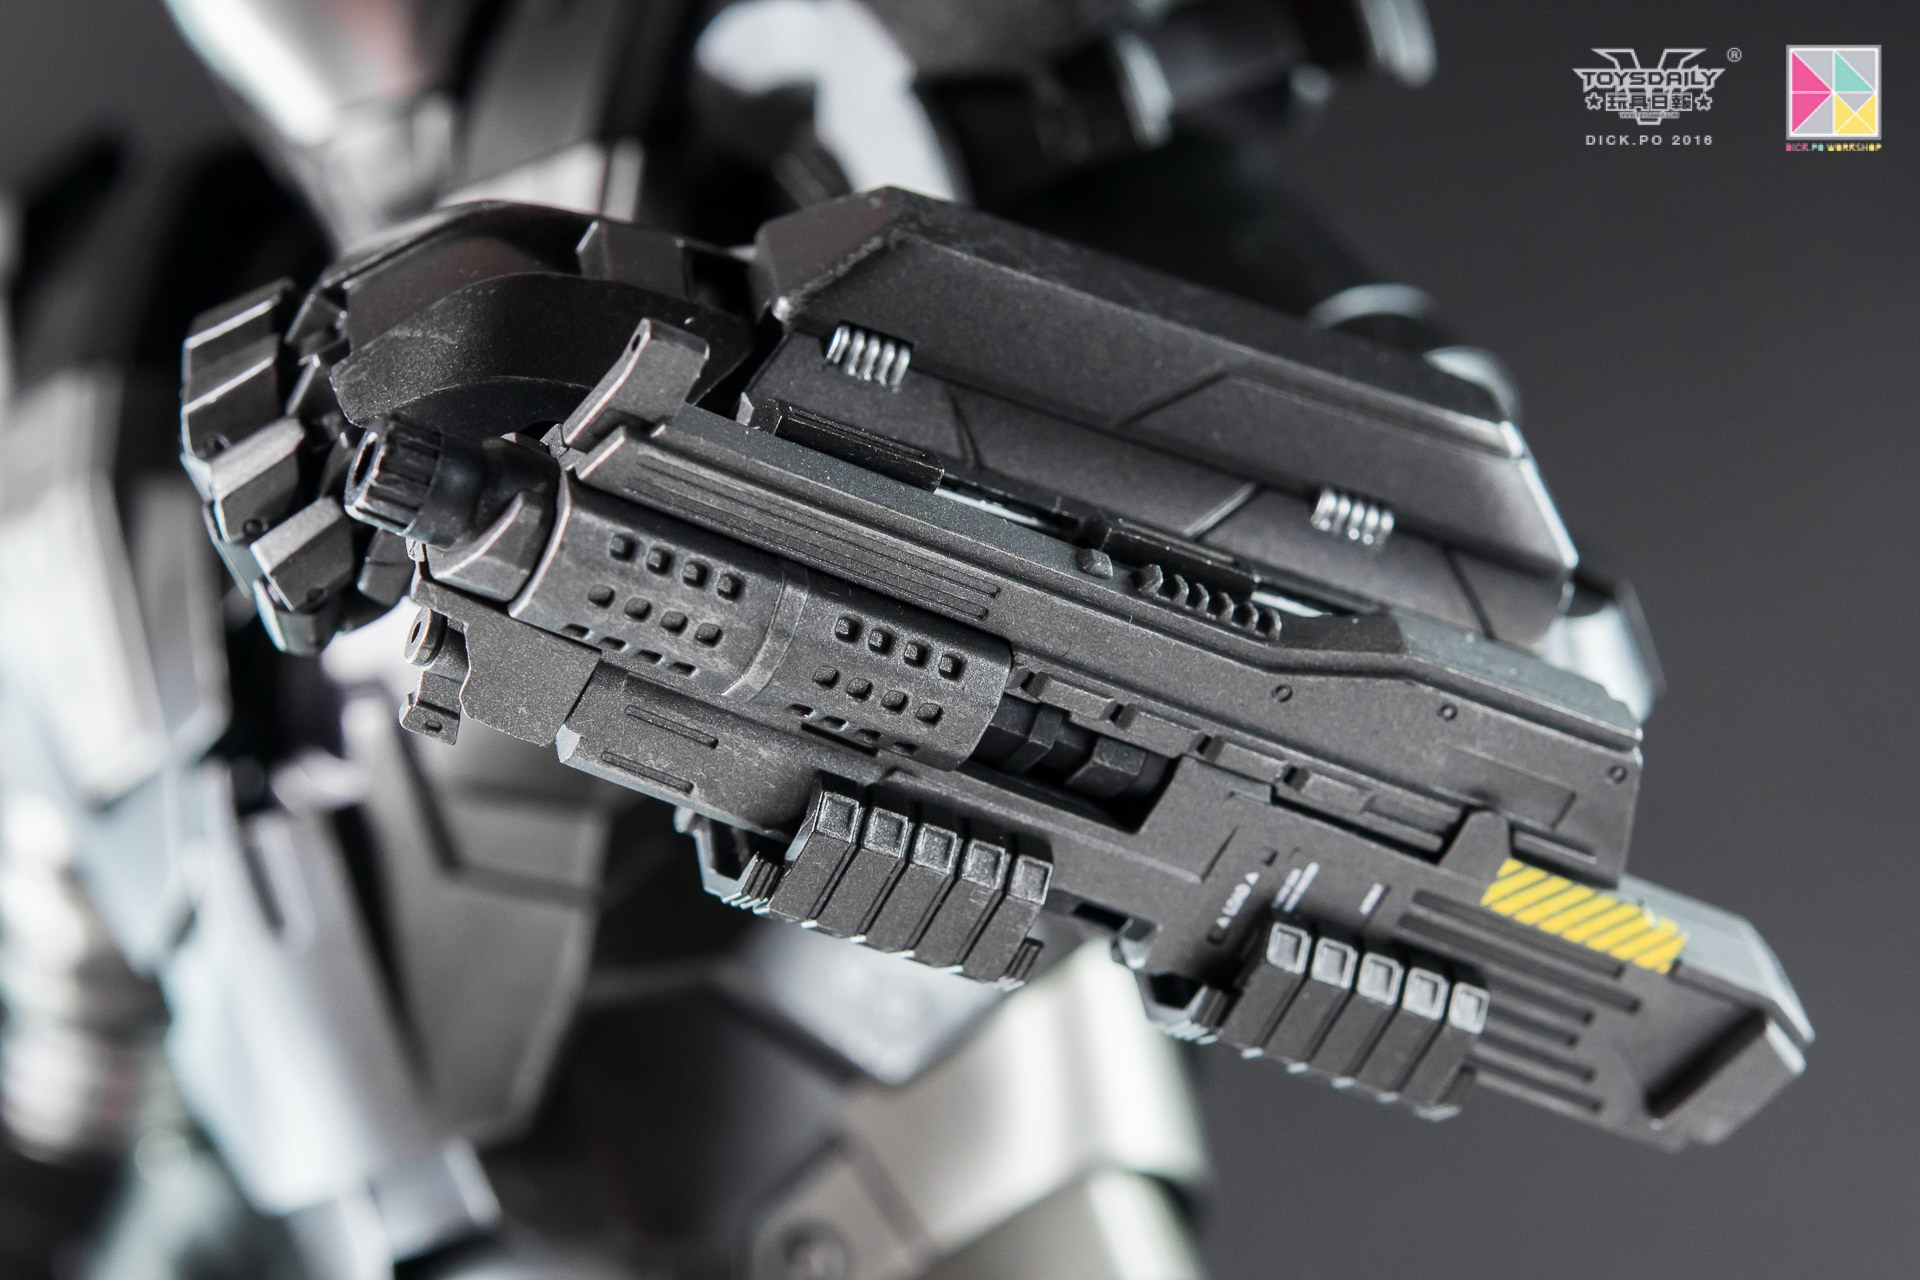 toysdaily_dick.po_warmachinemk1-34.jpg